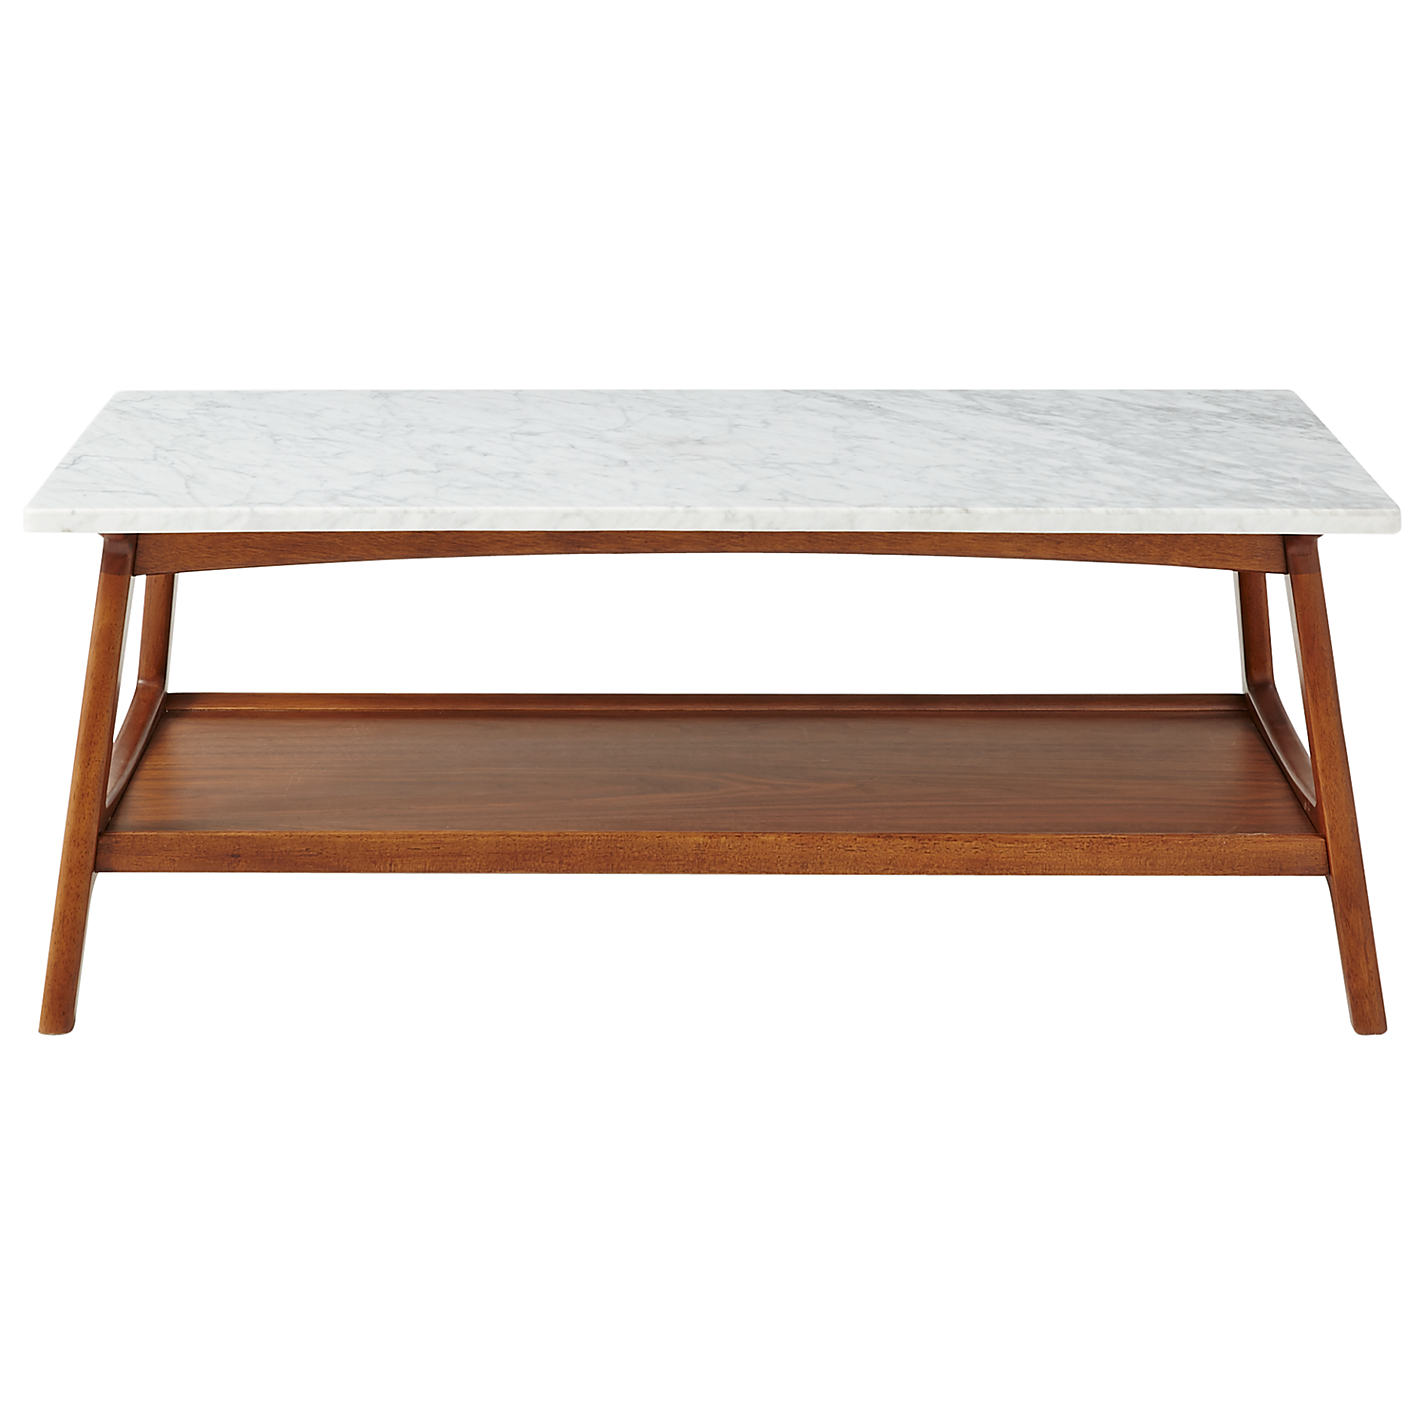 Buy west elm reeve mid century rectangular coffee table john lewis buy west elm reeve mid century rectangular coffee table online at johnlewis geotapseo Gallery